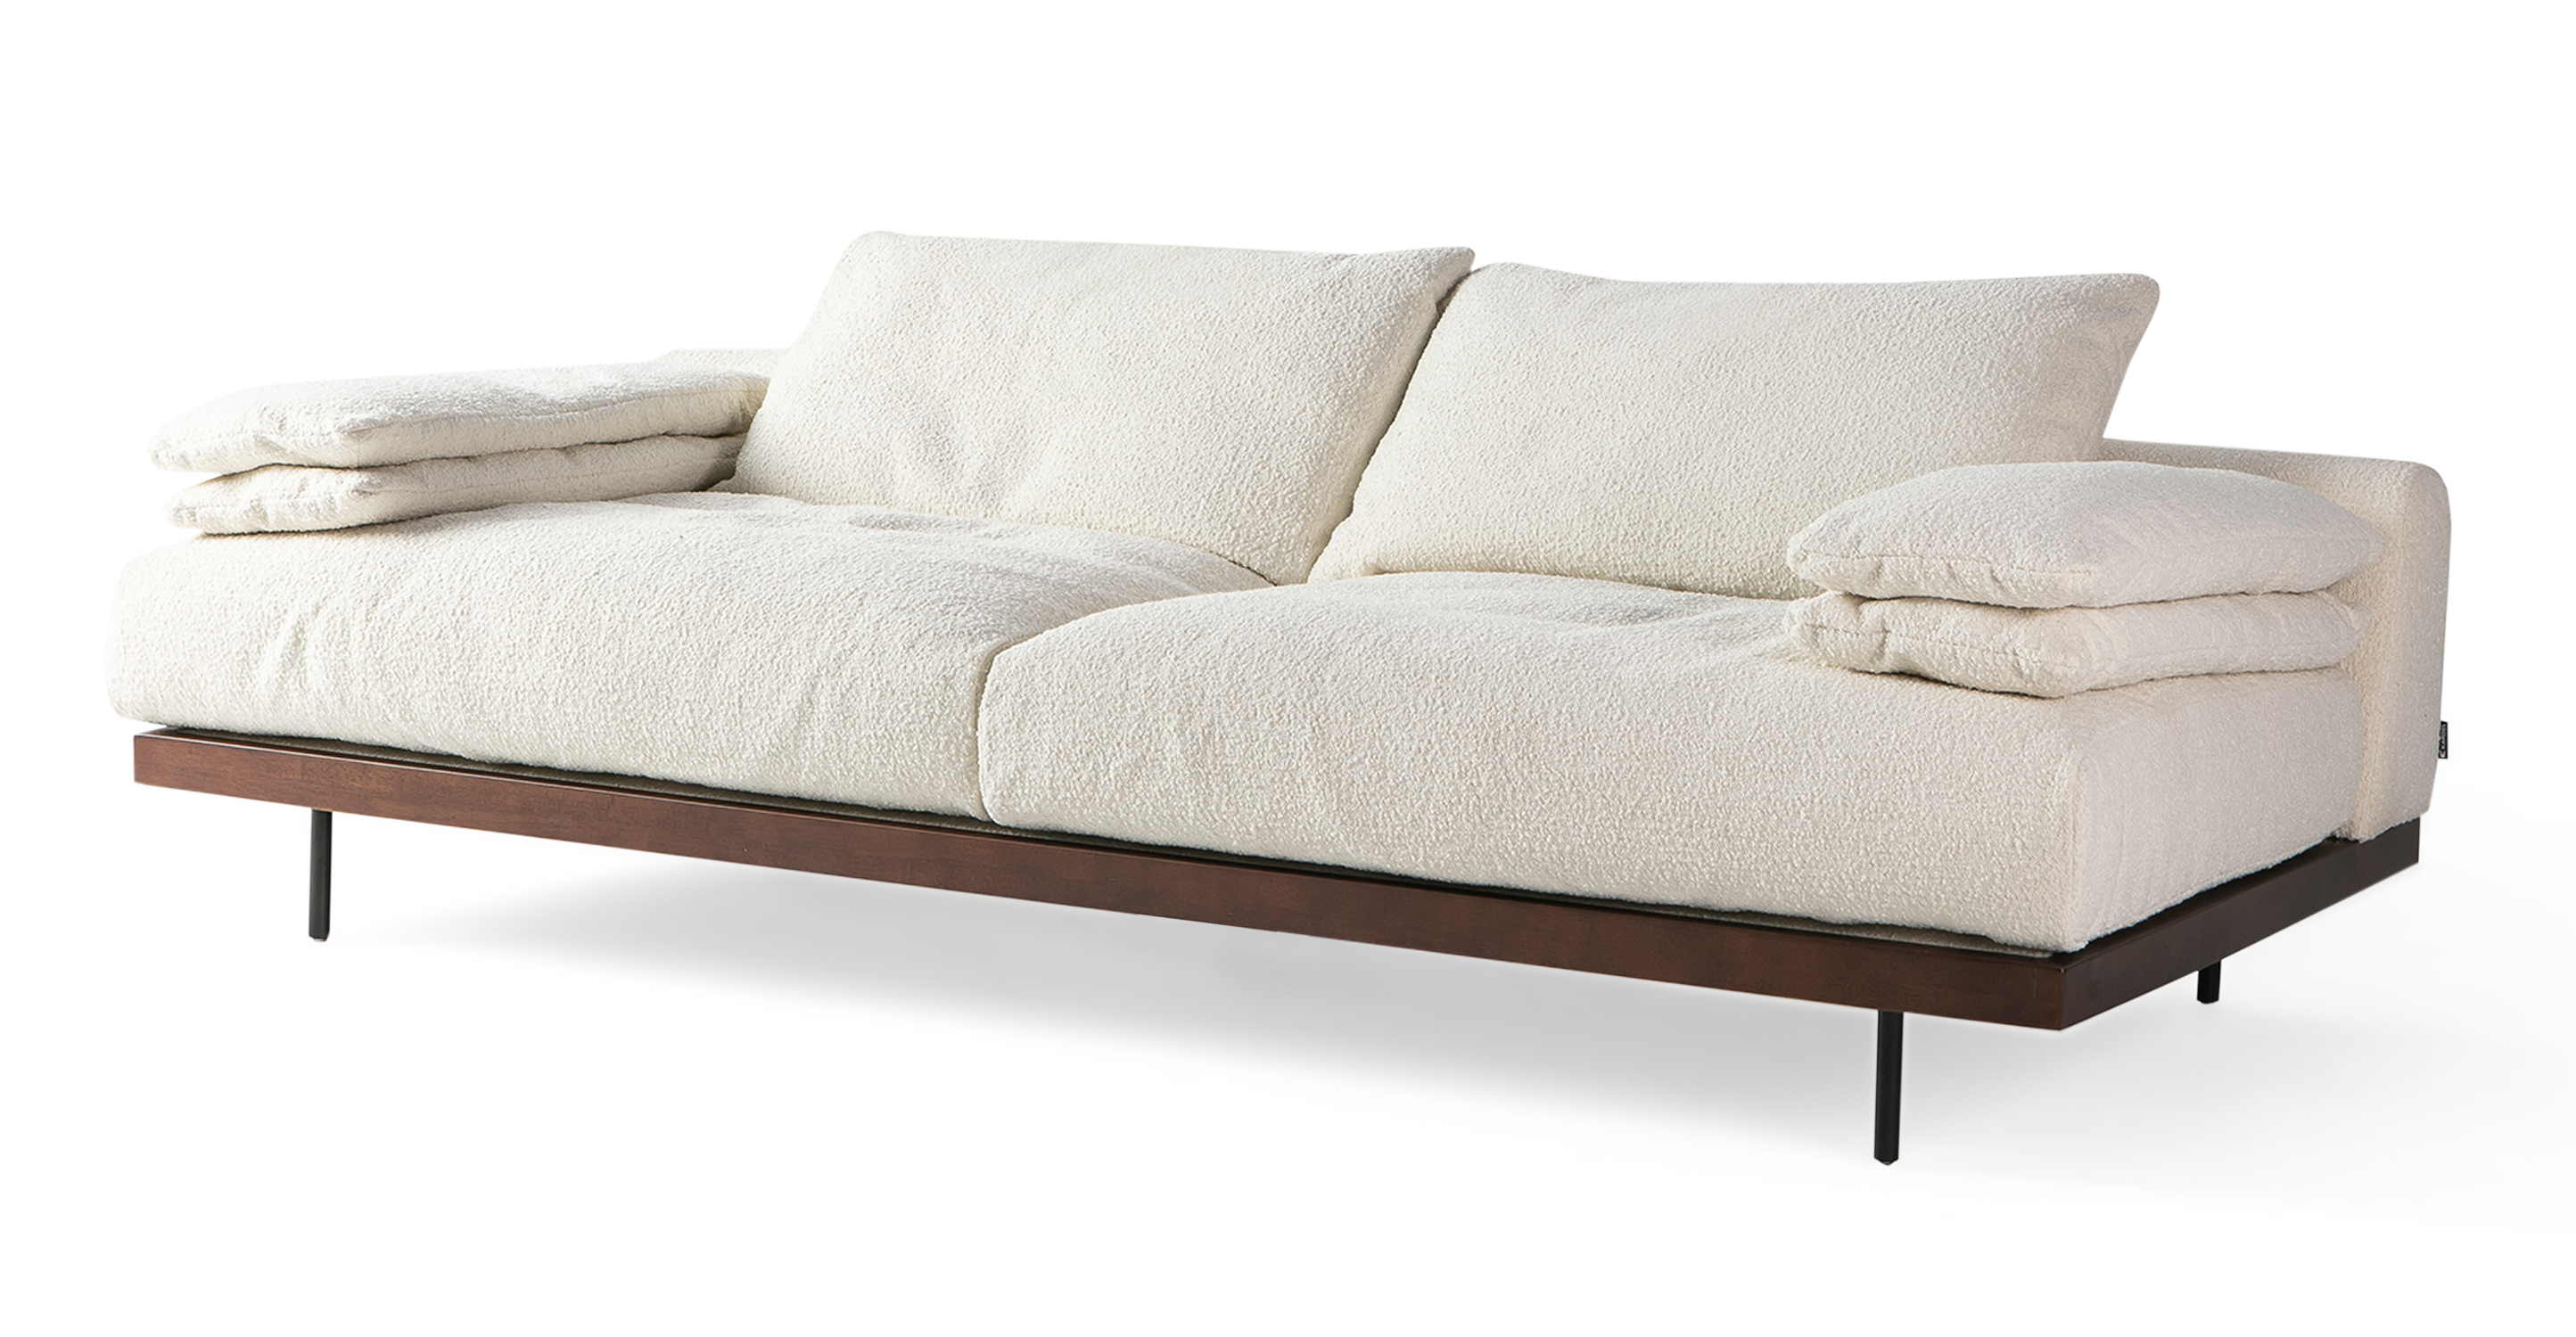 "Malibu 91"" Fabric Sofa Sleeper, Cream Boucle"